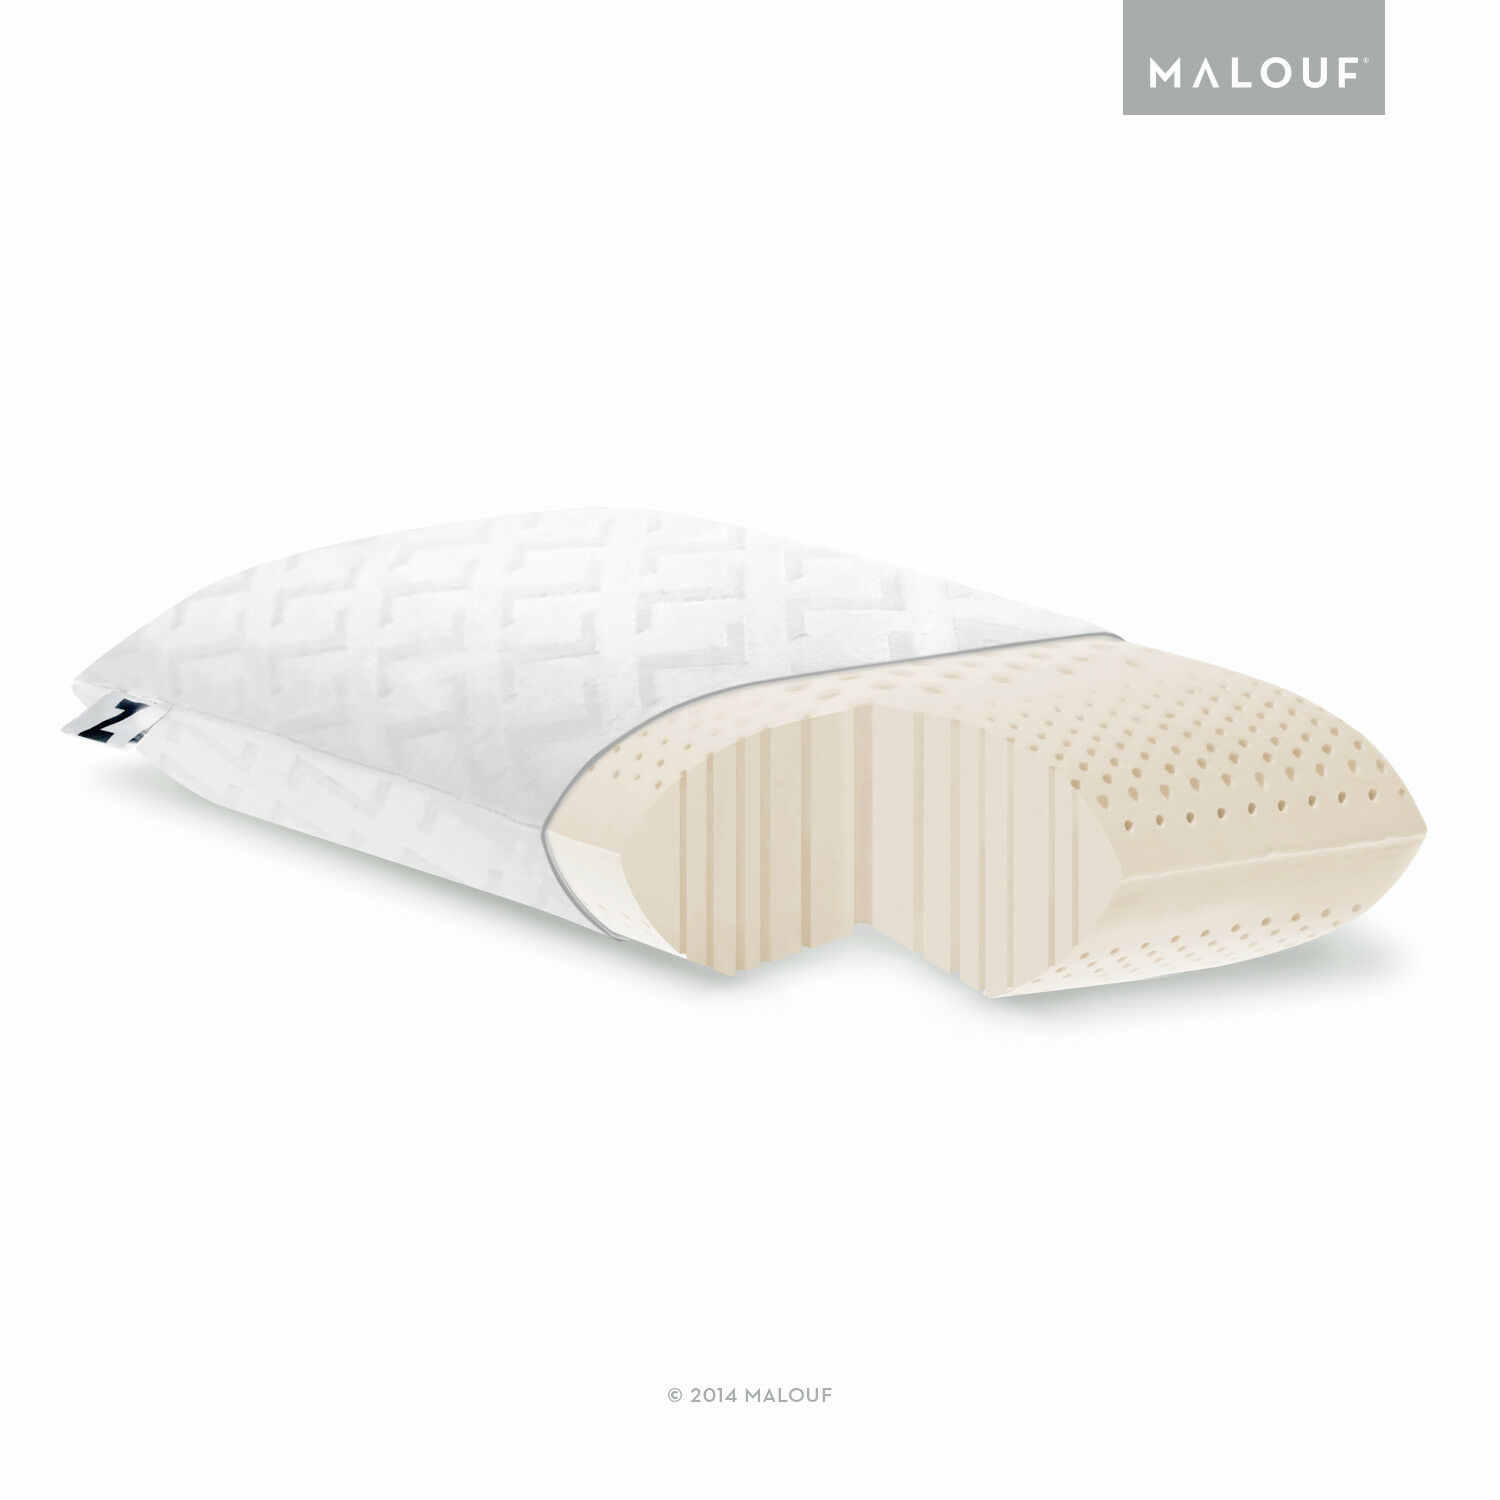 Z Zoned Ultra Soft Dough Foam Bed Pillow - 5 Year Warranty -